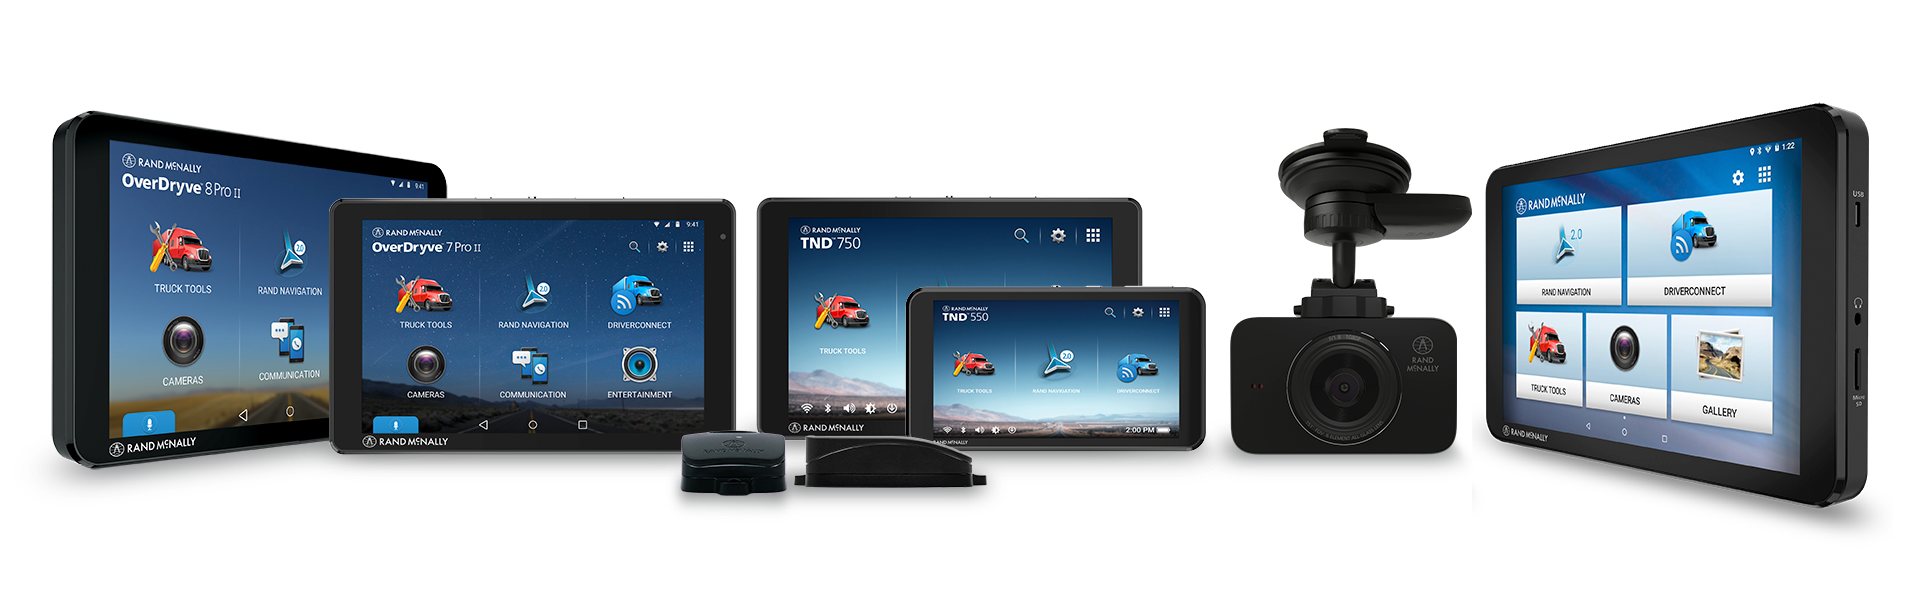 rm-f-m-p_rm-devices_and_rm_tablets_1920w.png